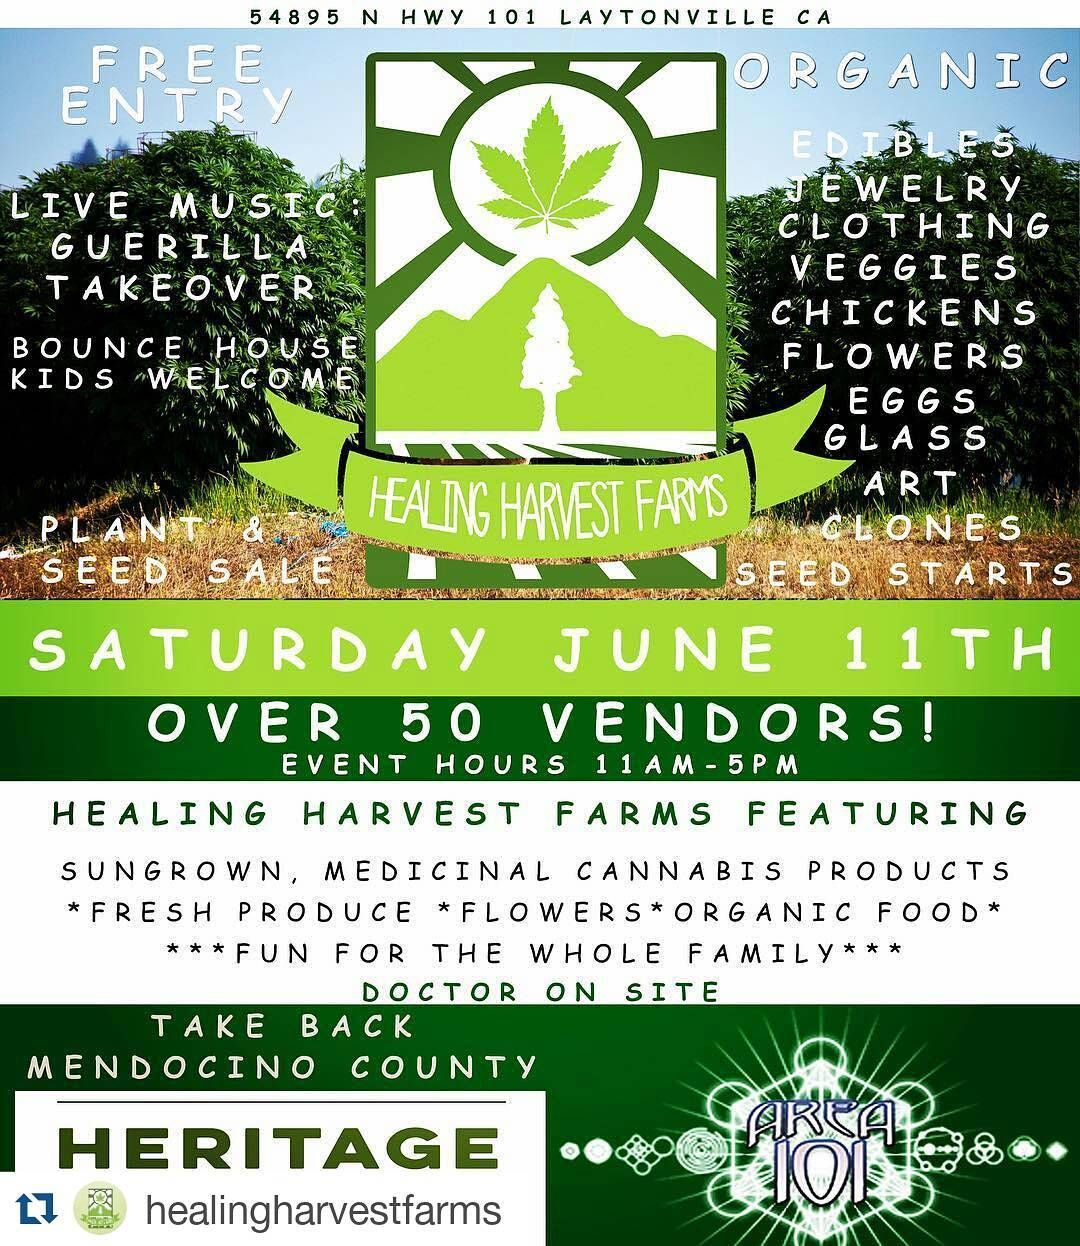 """#Repost @HealingHarvestFarms:  """"June 11th Market Day! """" We can't wait! Come by our booth and check out special donation pricing on our Platinum OG tested by @SCLabs at 27.48% total cannabinoids!  #BlueBellyFarms #PlatinumOG #DosPerrosFamily #ShoDaLove #CaliDepFest #TheHighestGrade #CoastalSeeds #HealingHarvestFarms #TheEmeraldCup #HealingHarvestFarmsFarmersMarket #farmersmarket #cannabisfarmersmarket #norcal #knowyourgrower #knowyourbreeder #sungrown #outdoorgarden #w420 #420 #710 #rosin…"""